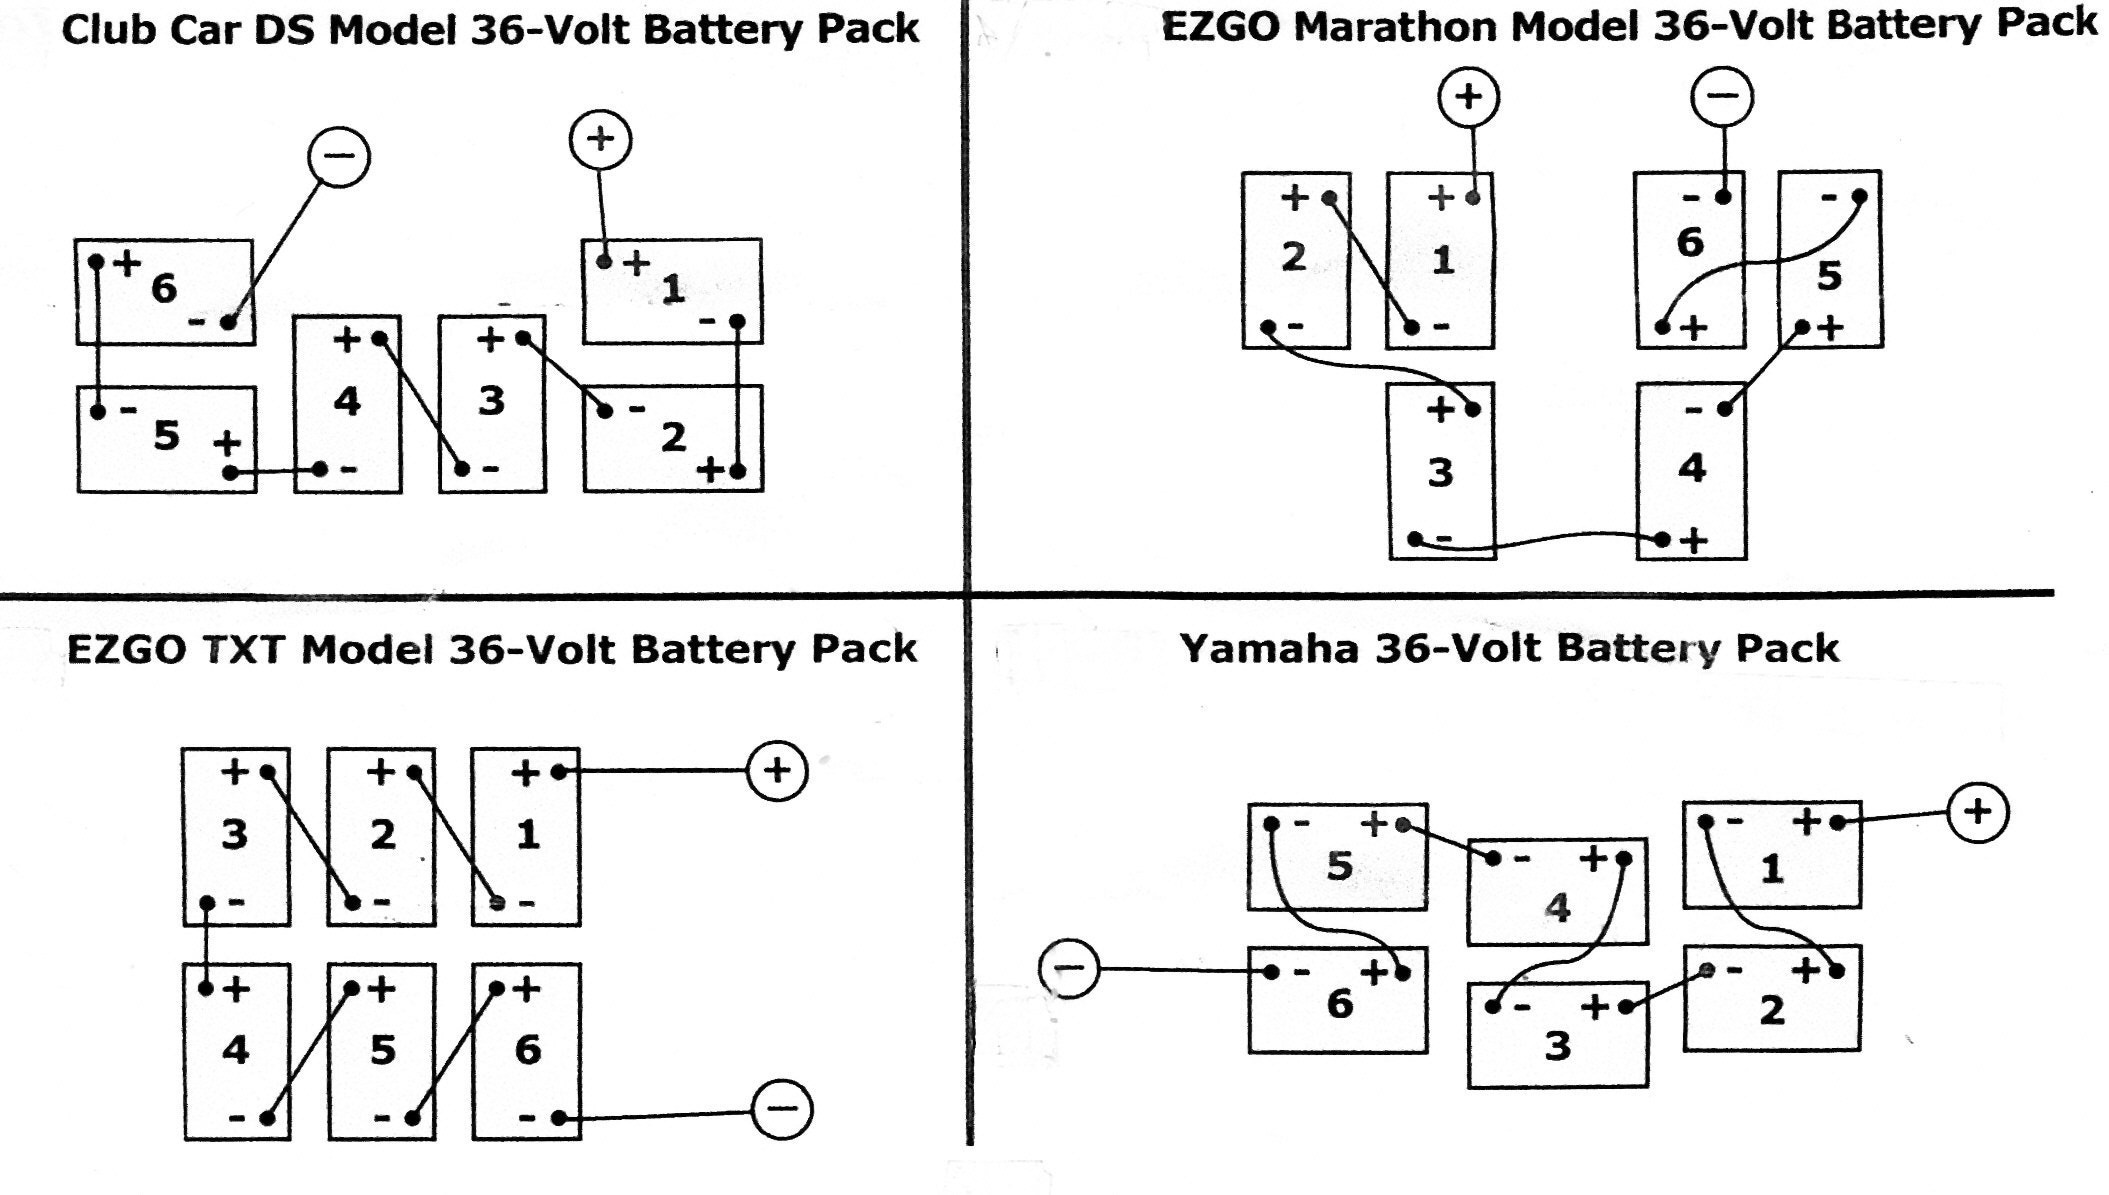 Wiring Diagram for Club Car Precedent New Wiring Diagrams for Yamaha Golf Carts Refrence Ez Golf